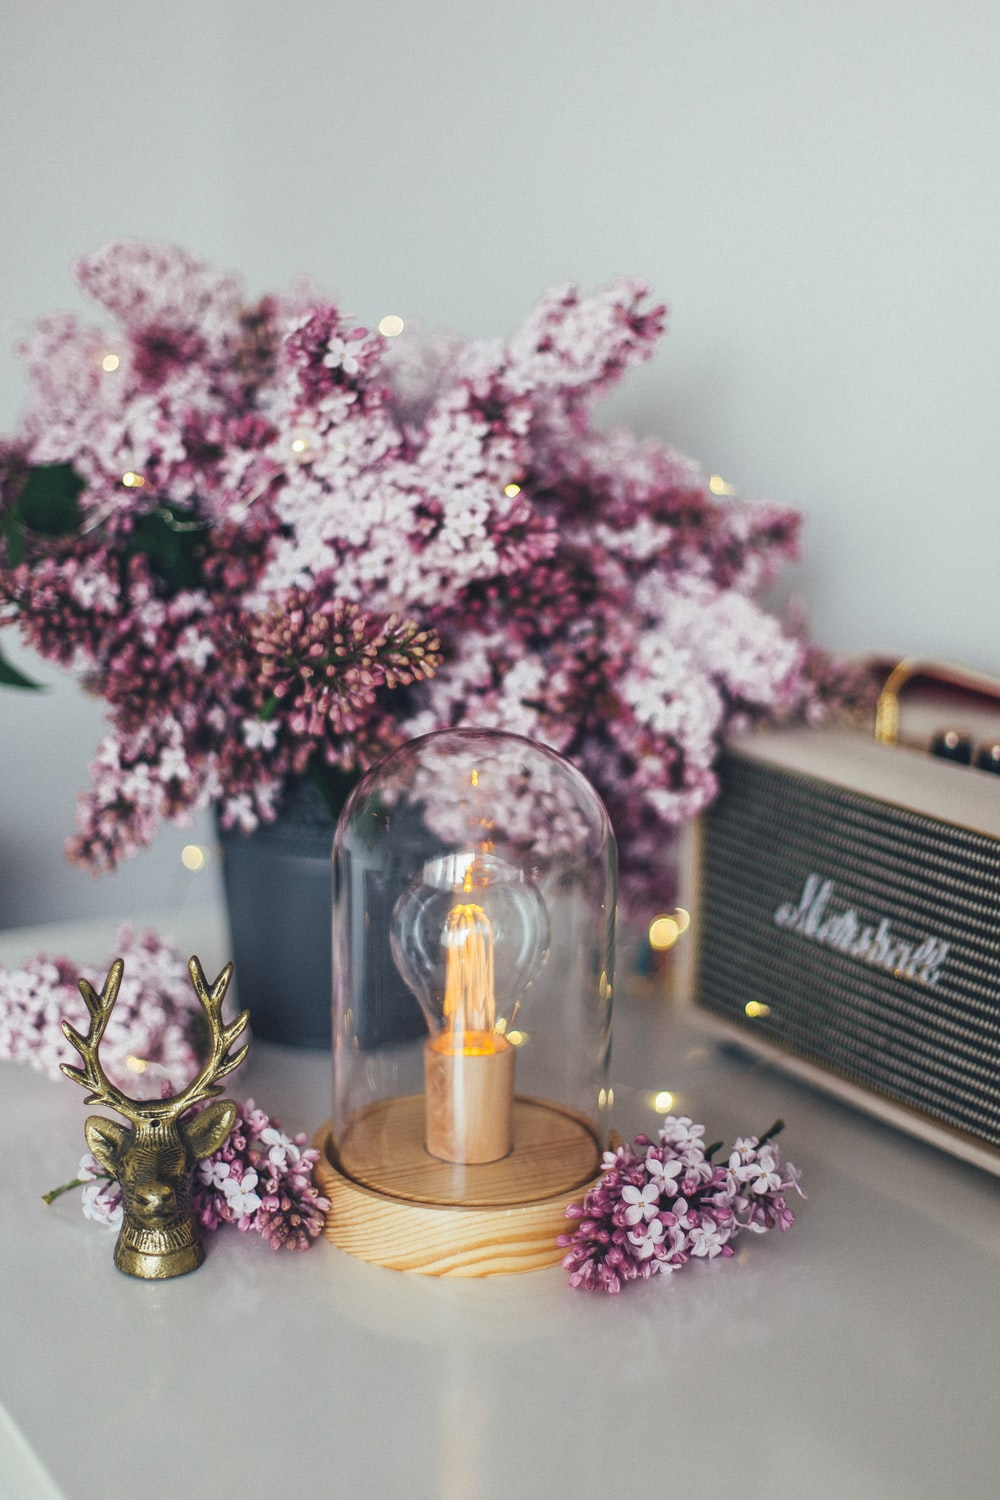 pink and purple flowers beside brown Marshall guitar head amplifier